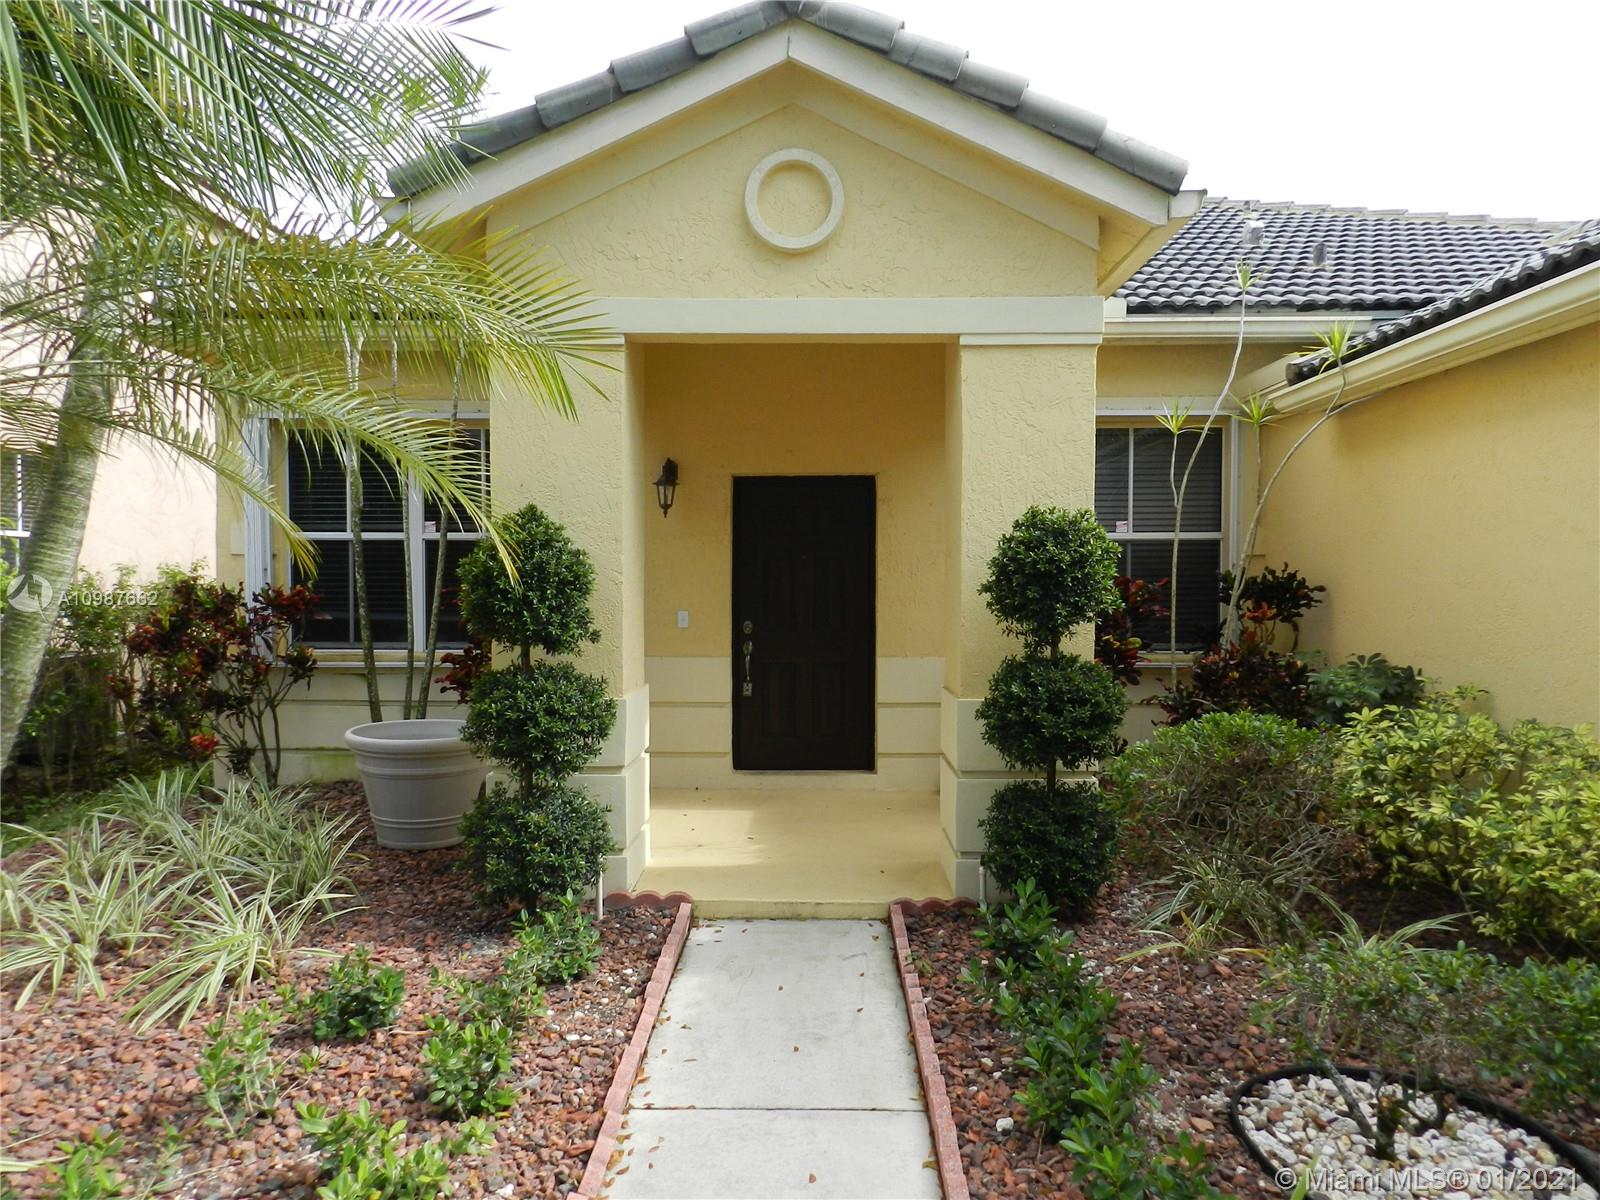 BEAUTIFUL ONE STORY HOME IN DESIRABLE SAVANNA. FULL 4 BEDROOMS AND 2 1/2 BATHS. QUIET NEIGHBORHOOD, CLOSE TO A+ RATED SCHOOLS.